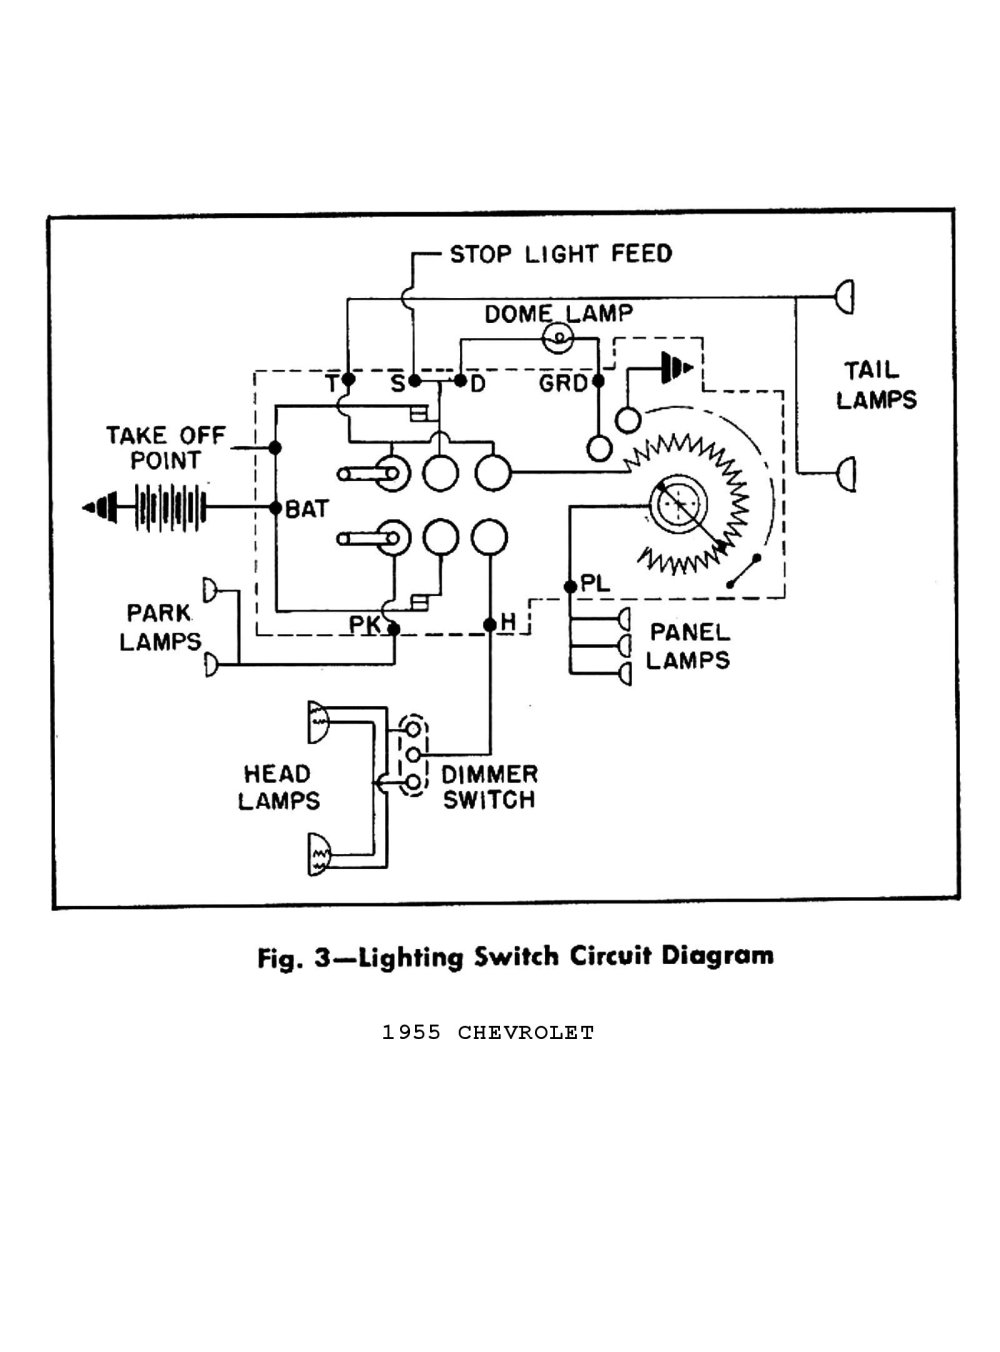 medium resolution of 1950 gmc wiring diagram trusted wiring diagram 01 mustang headlight wiring diagram 1947 dodge headlight switch wiring diagram